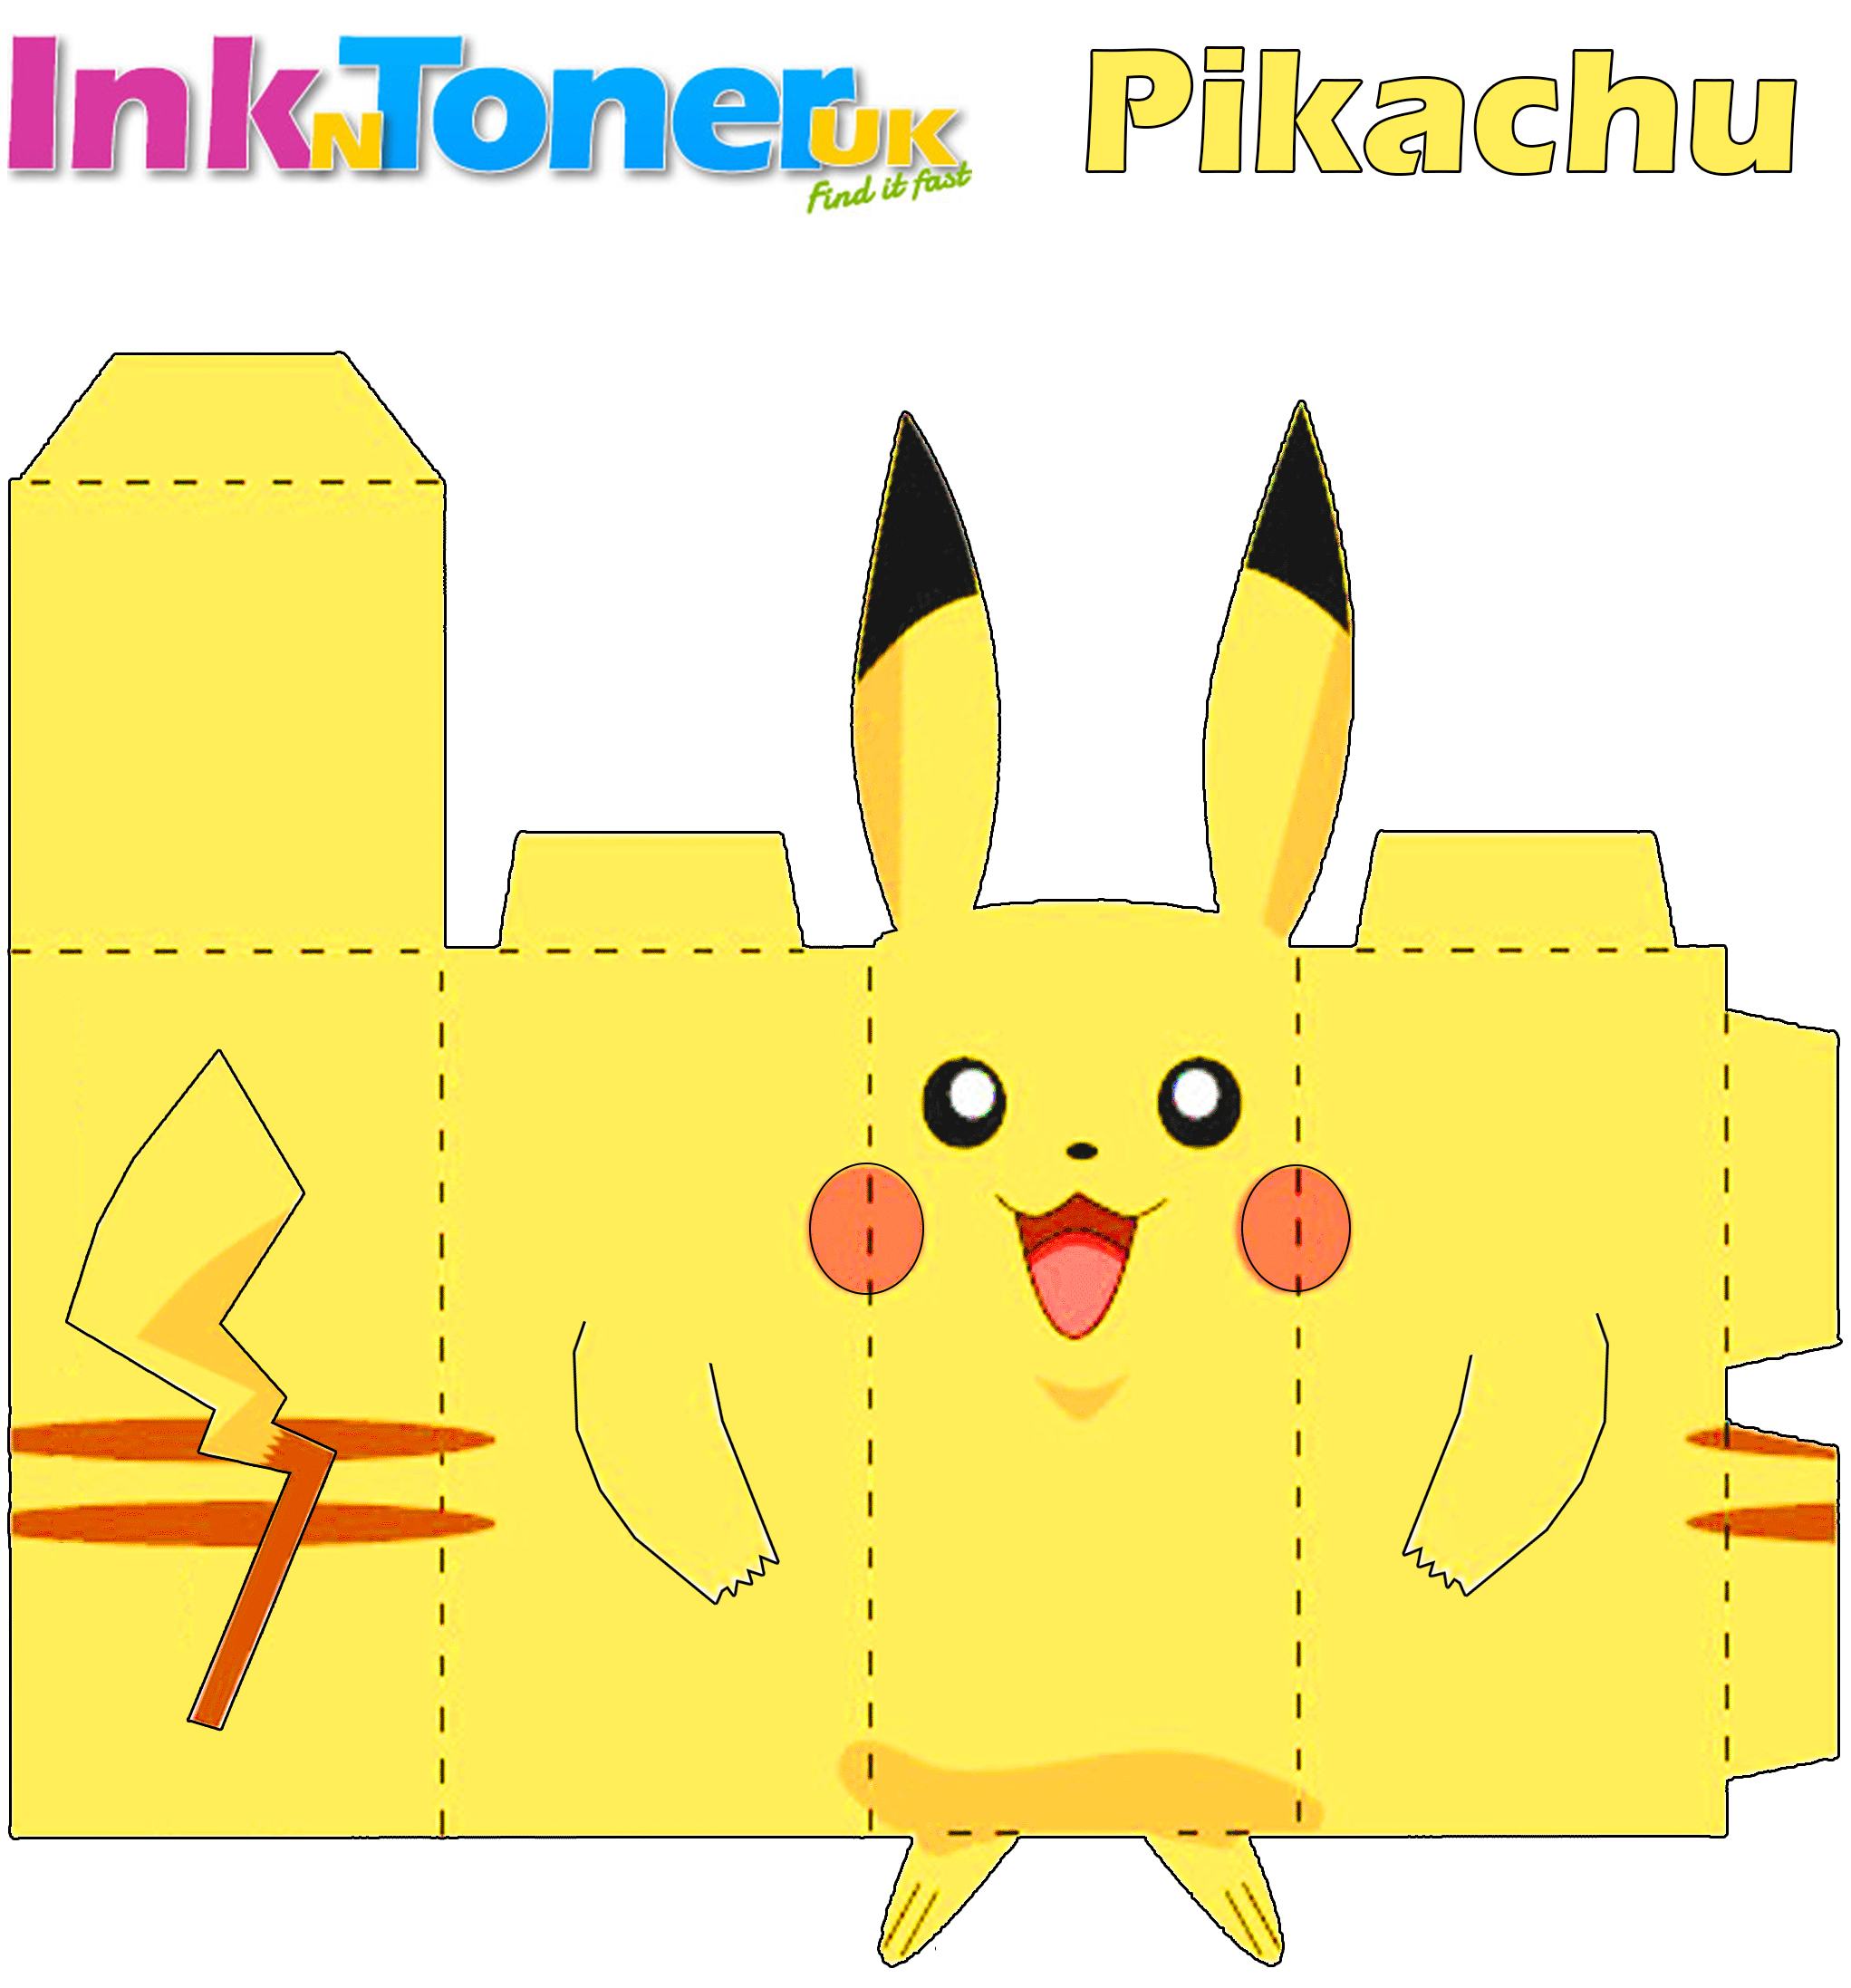 Pikachu Paper Craft Inkntoneruk Blog